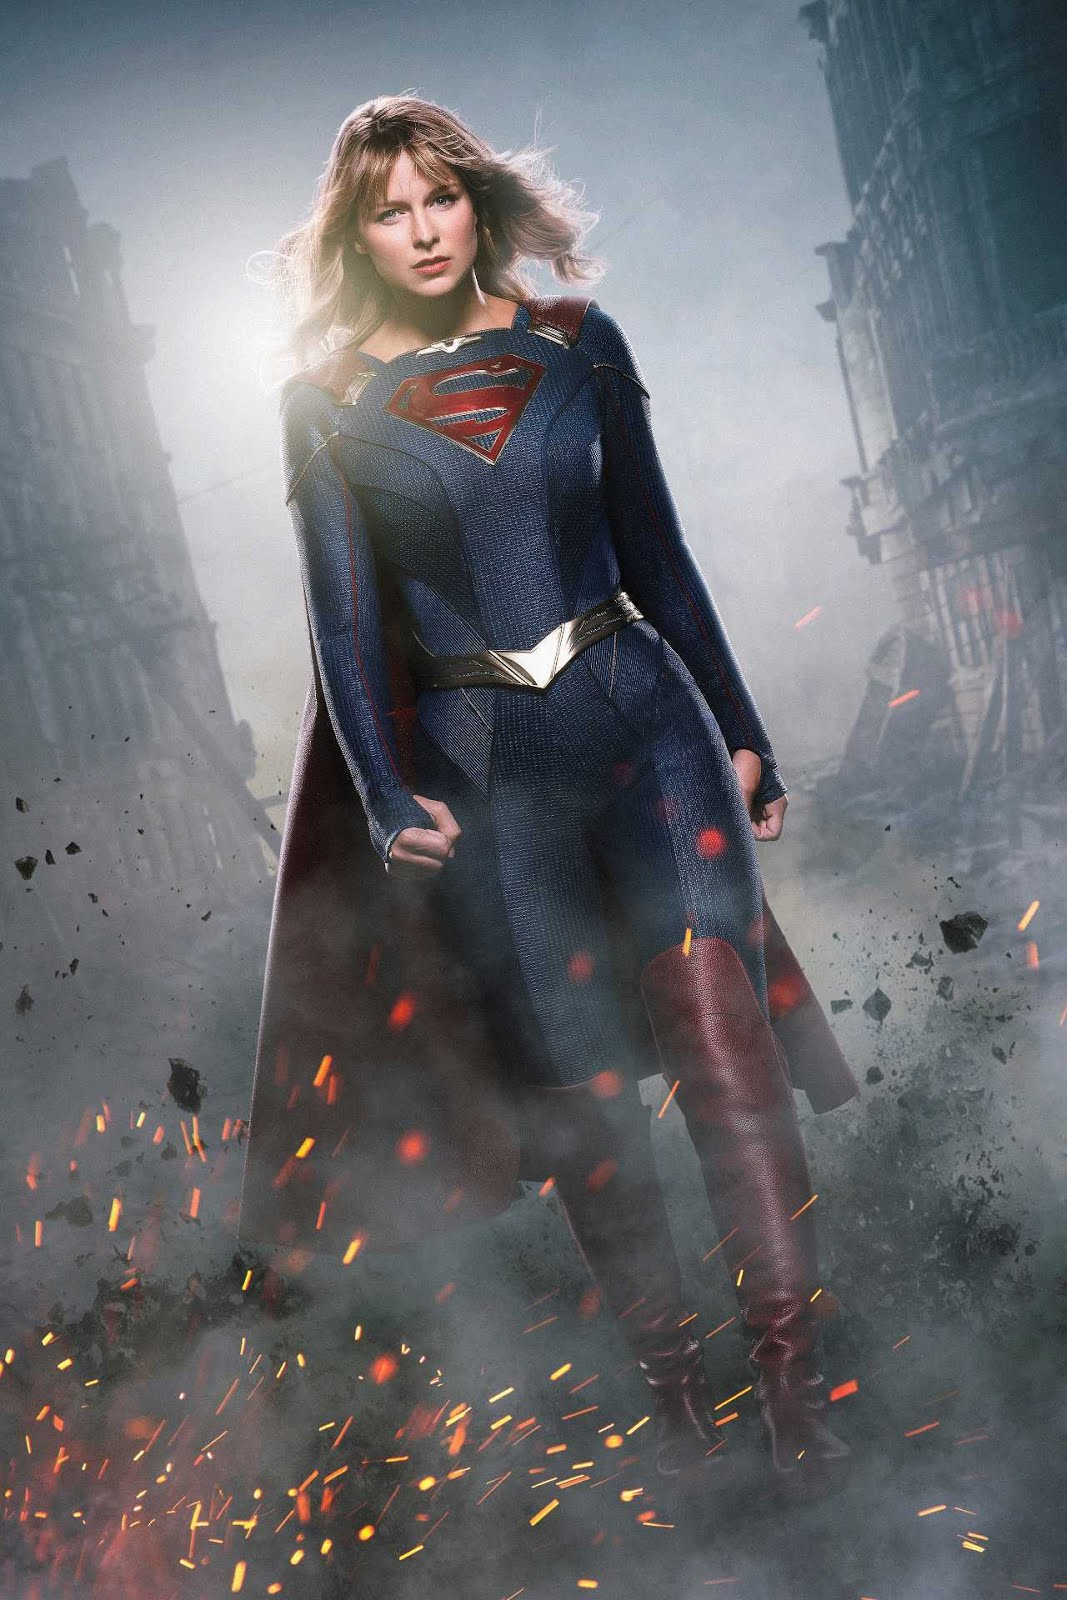 Supergirl S05E02 300MB HDTV 720p x264 Download